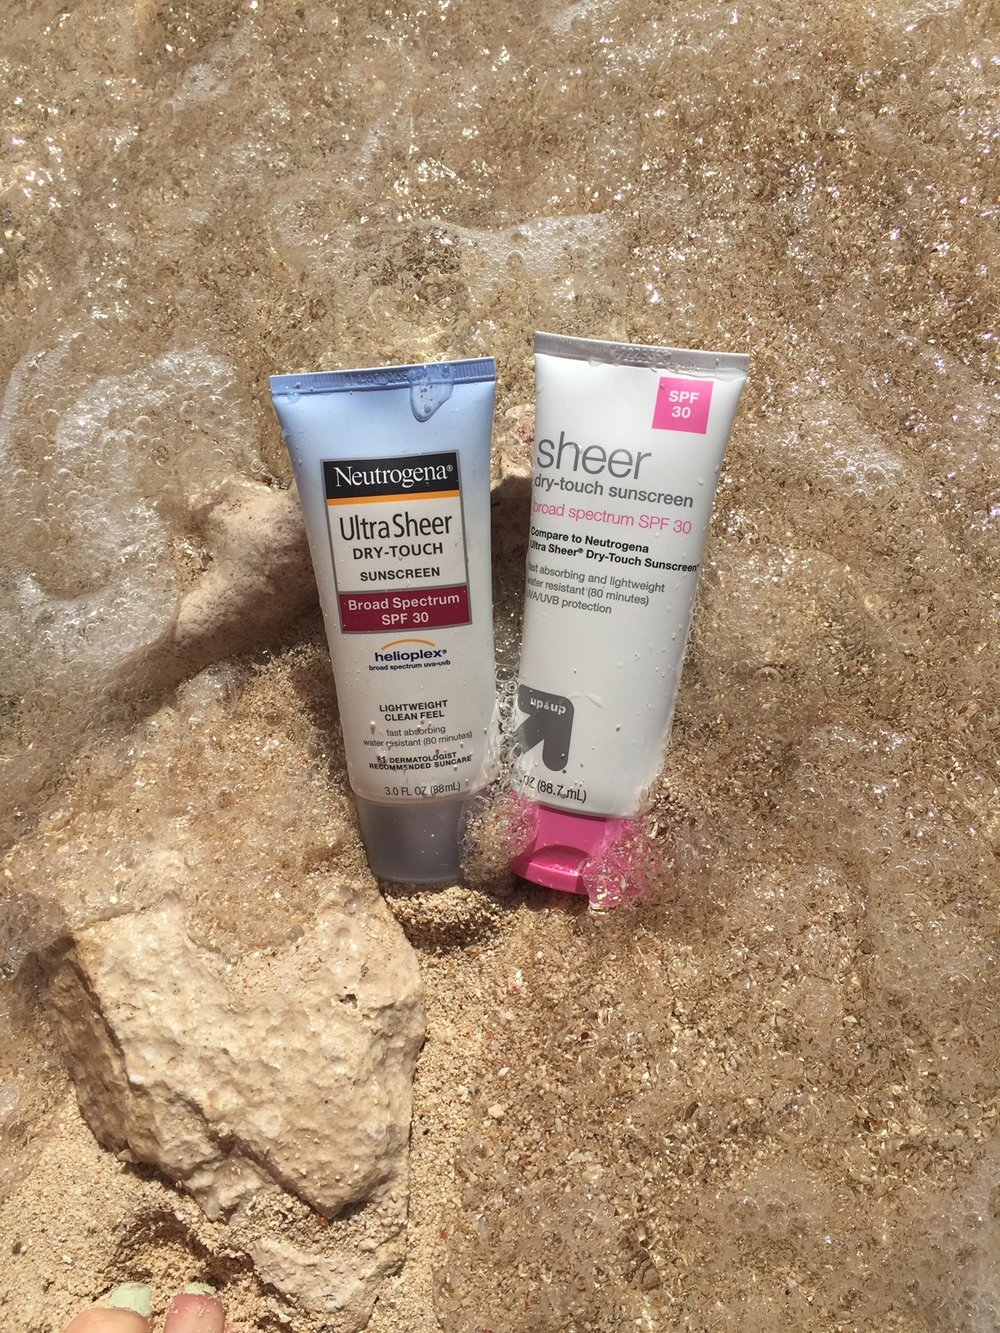 Tested the Up & Up Sheer Dry Touch Sunscreen and compared it to Neutrogena Ultra Sheer Sunscreen. A few minor ingredient differences, but we give this store brand copycat a thumbs up.